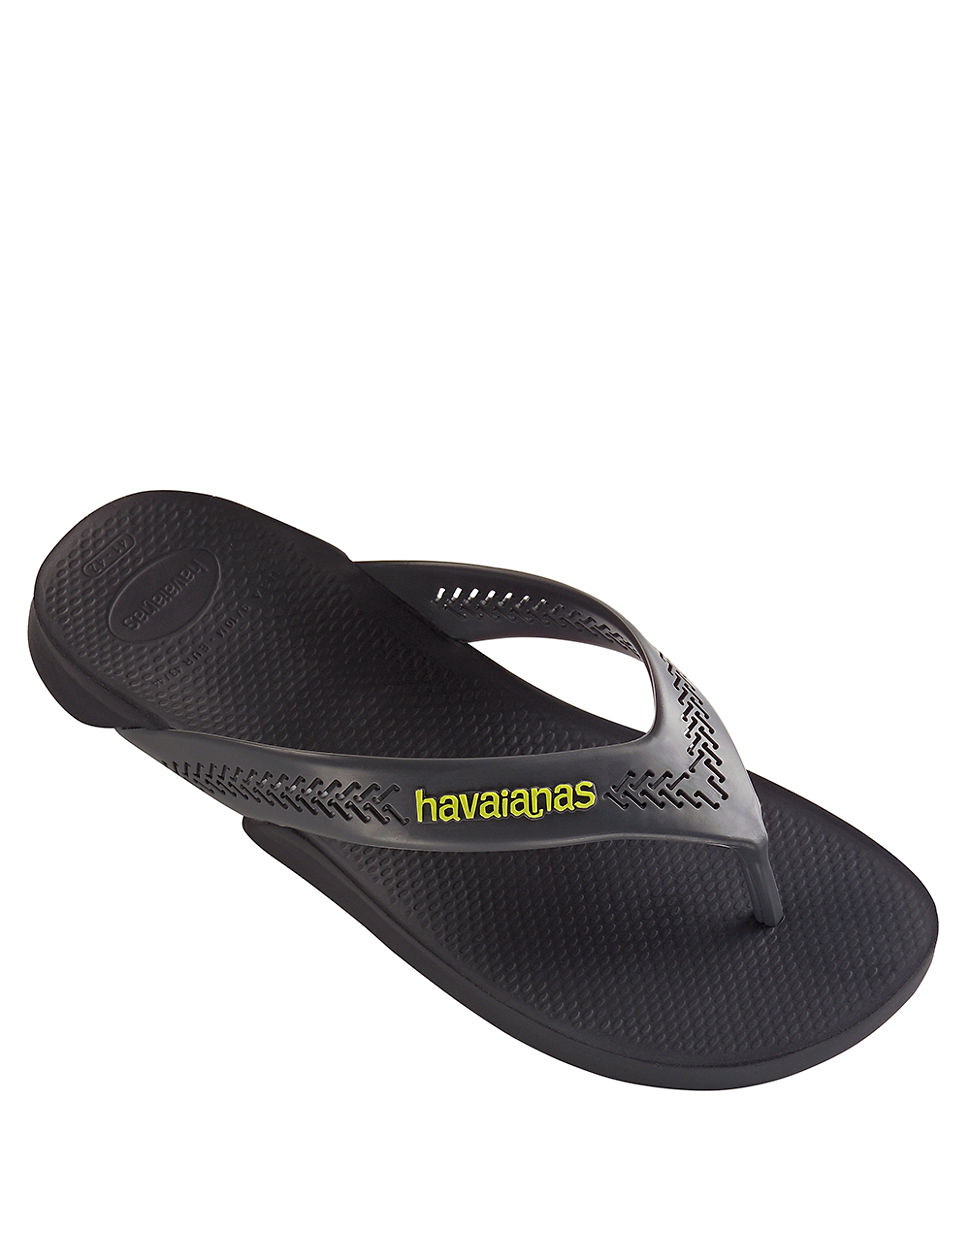 3ecbb9dc84b Havaianas Wide Rubber Thong Sandals in Black for Men - Lyst